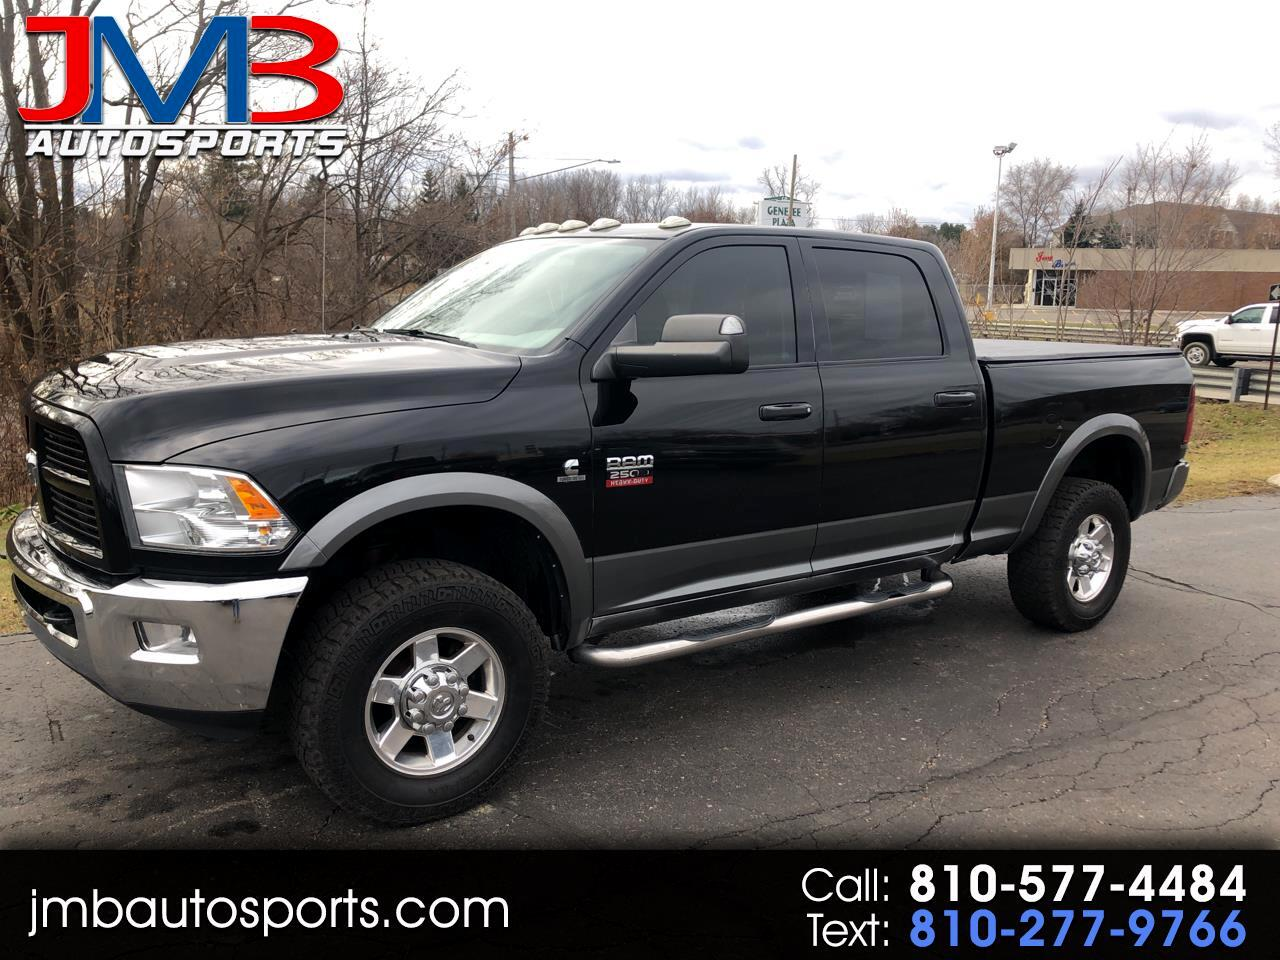 Used Tires Flint Mi >> Used 2012 Ram 2500 4wd Crew Cab 149 Outdoorsman For Sale In